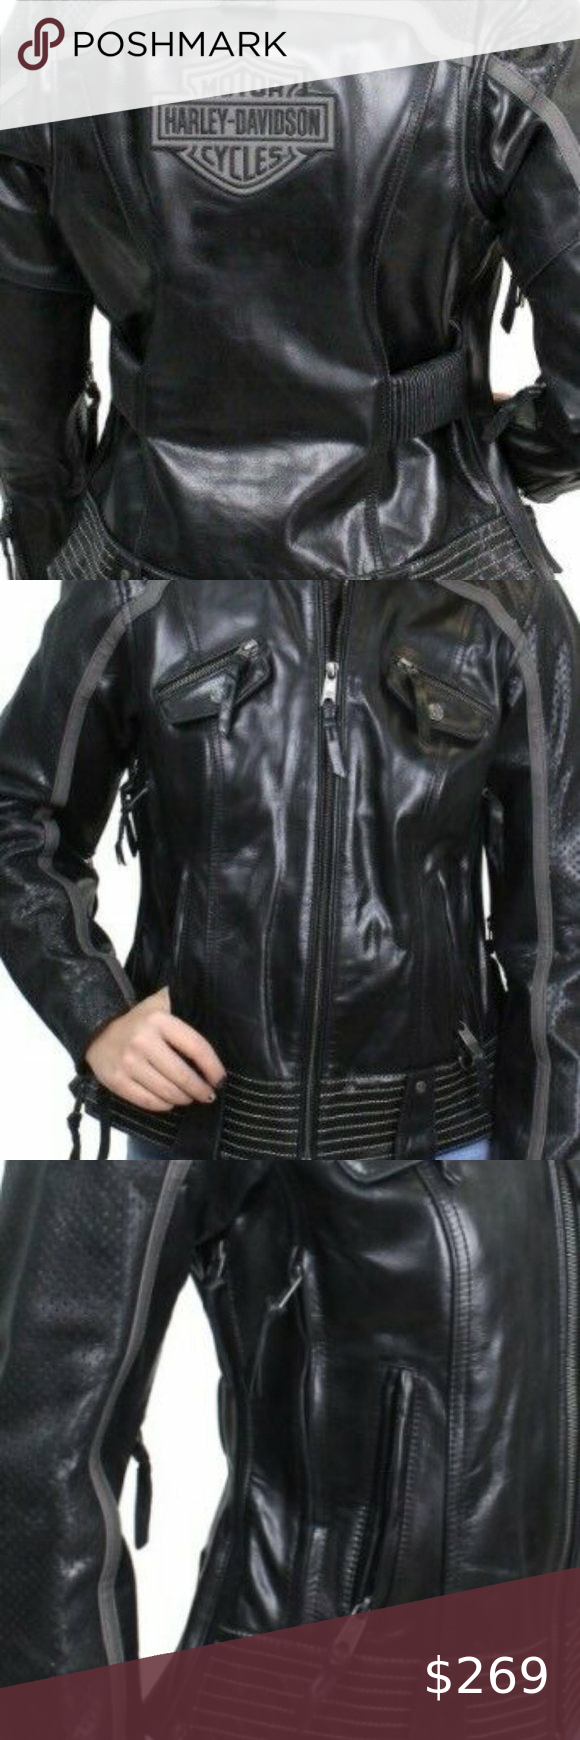 New Harley Davidson Leather Riding Jacket New With Tags Super Soft Leath Leather Motorcycle Jacket Women Leather Riding Jacket Harley Davidson Leather Jackets [ 1740 x 580 Pixel ]